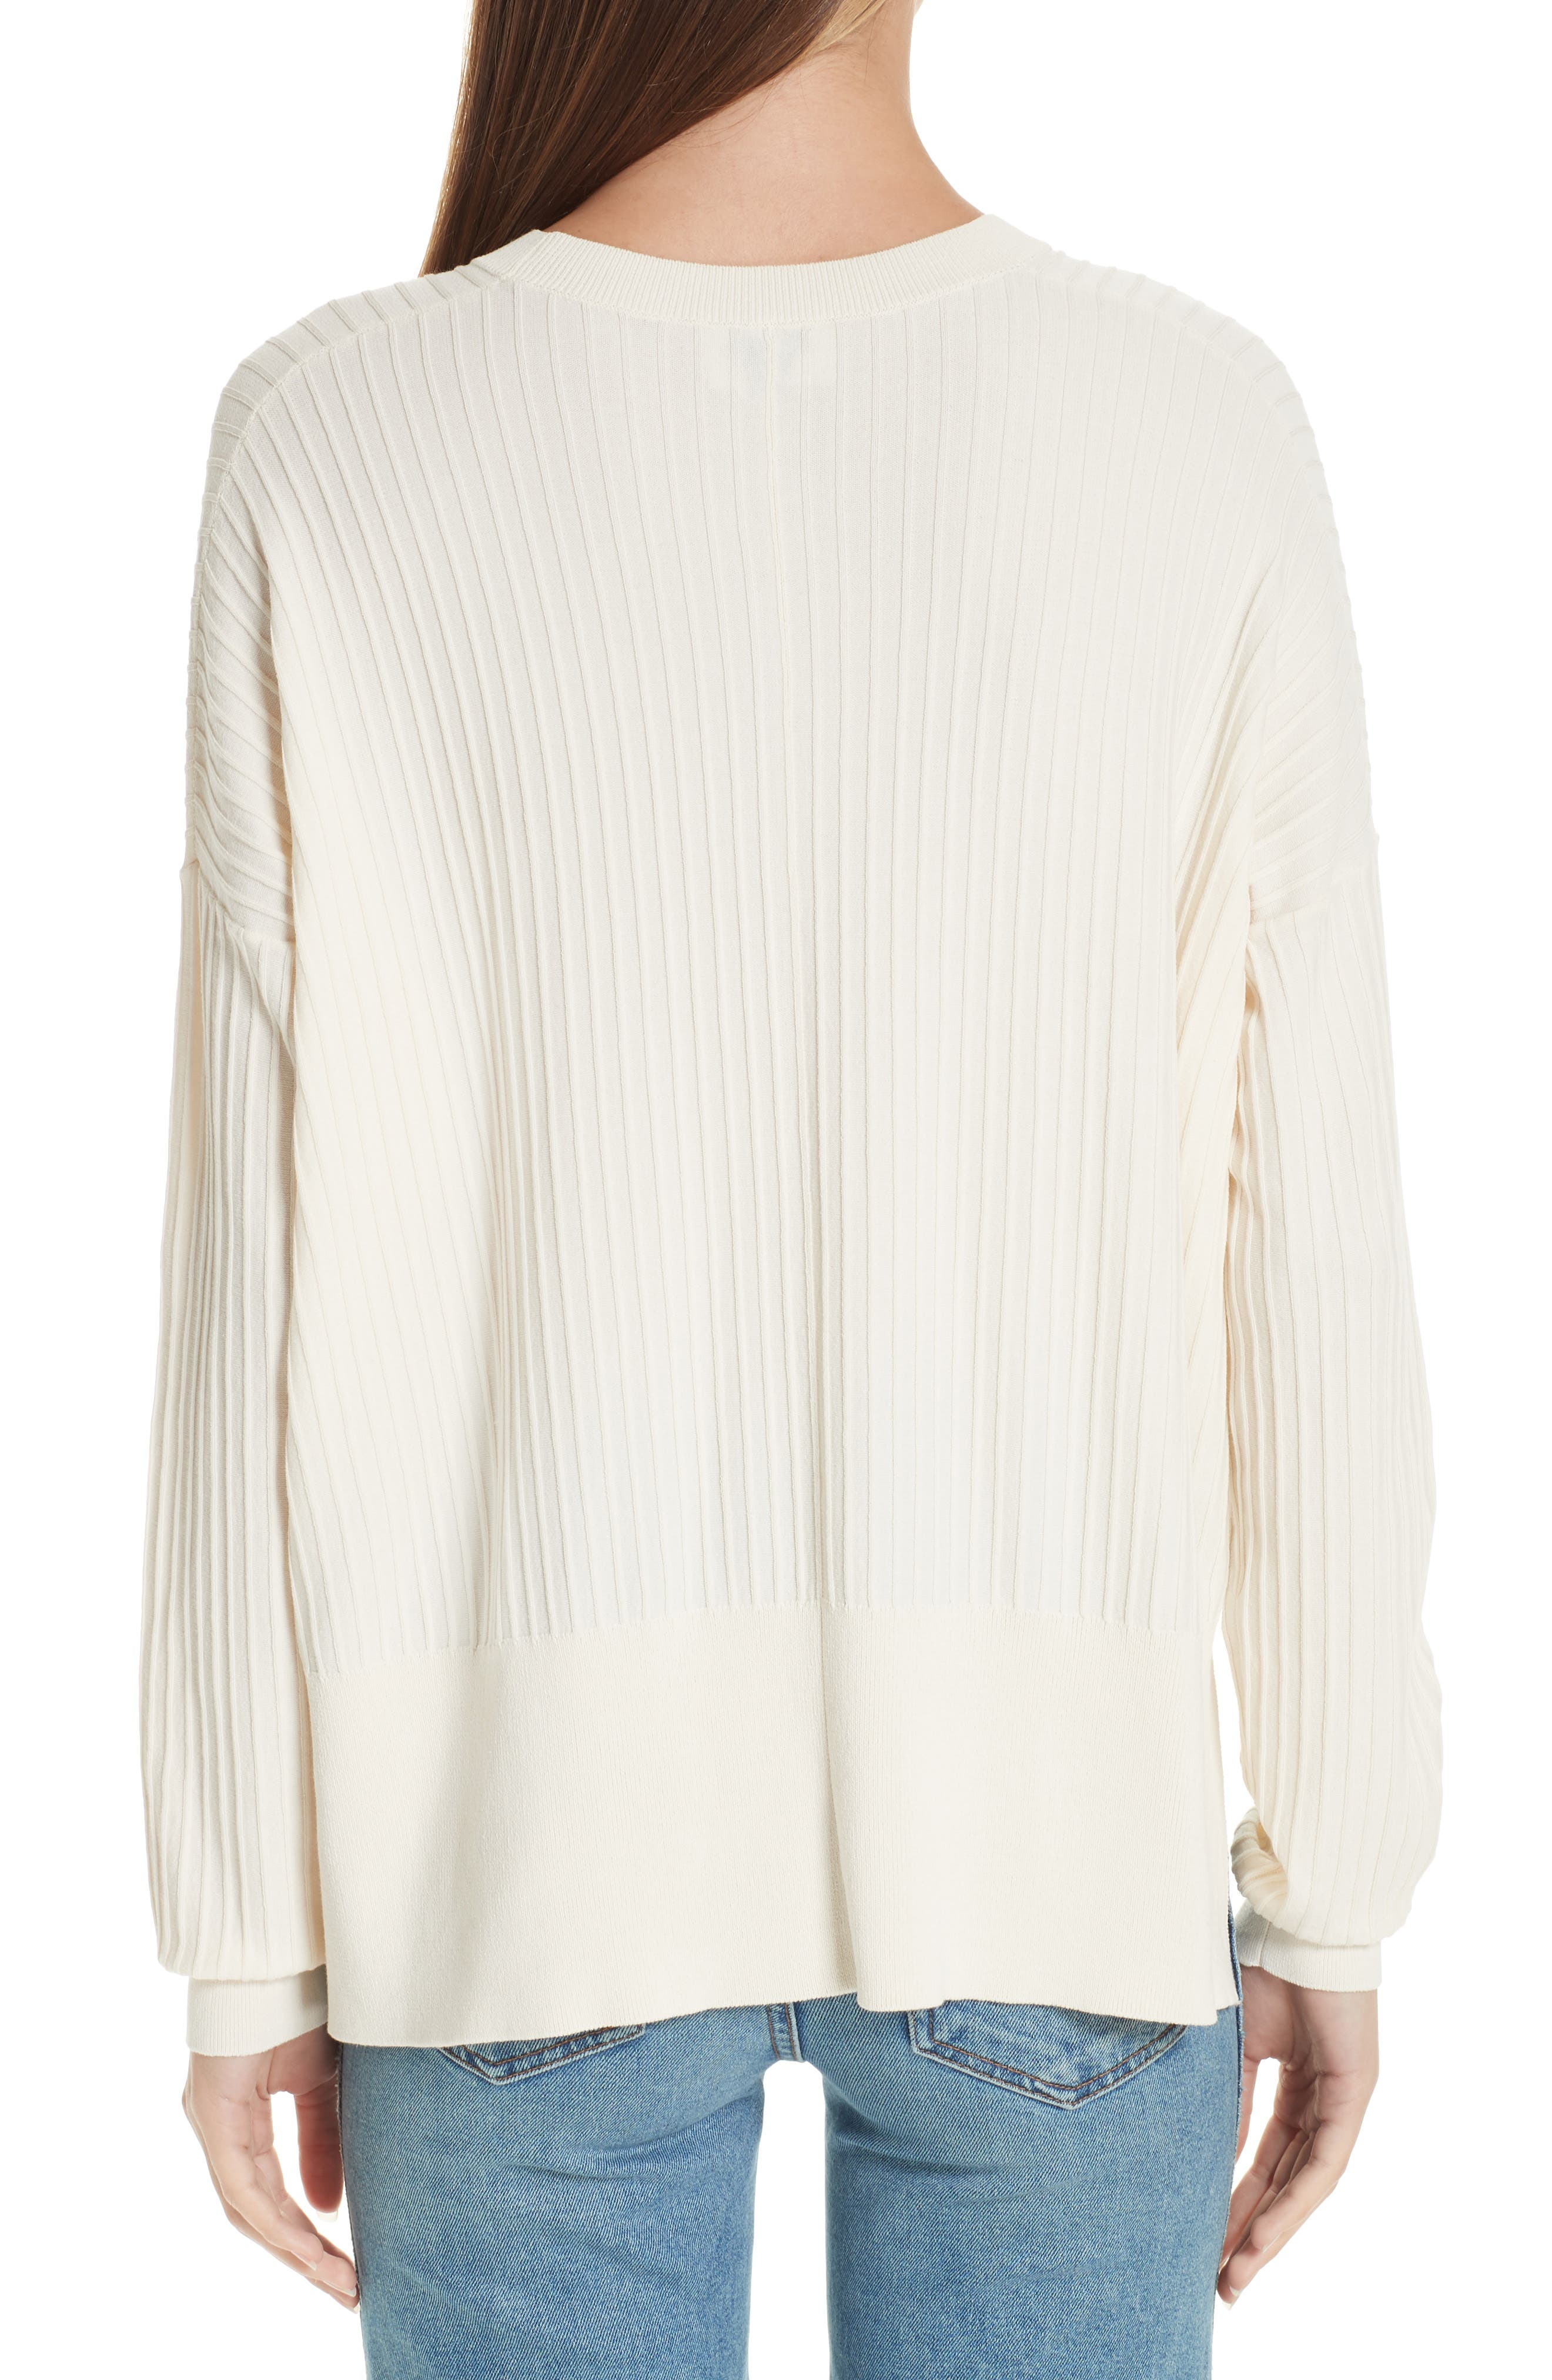 Issy Ribbed Sweater,                             Alternate thumbnail 2, color,                             900